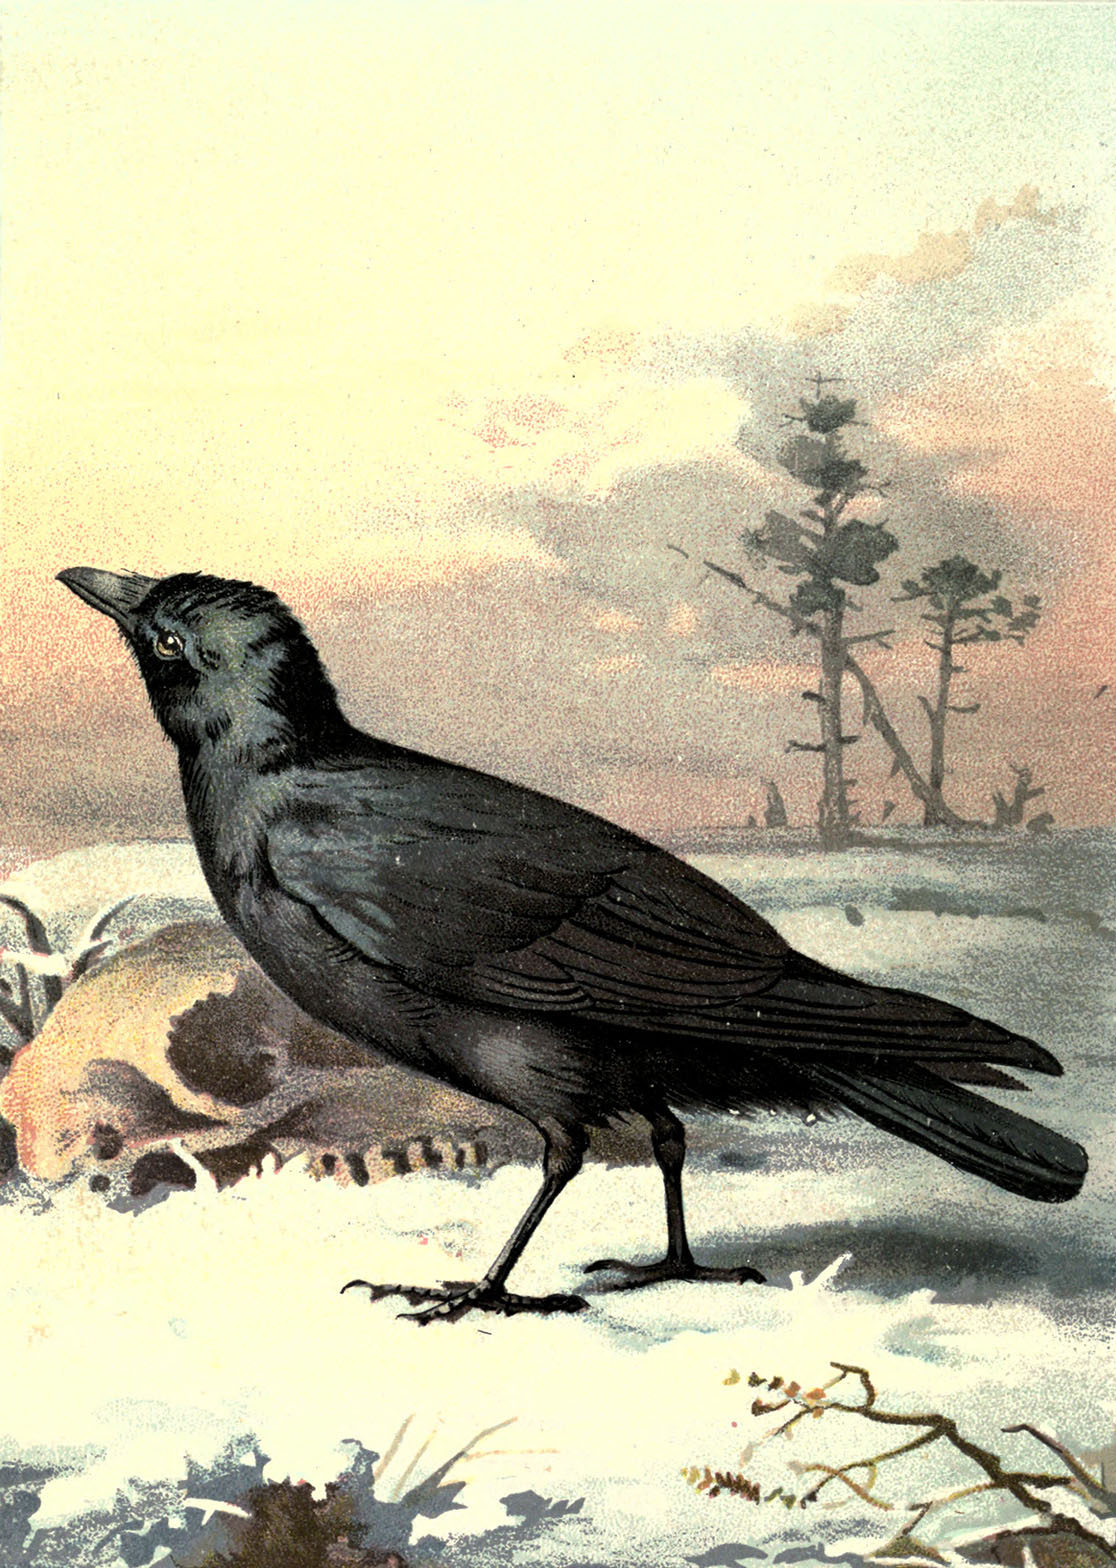 Vintage Carrion Crow Clipart Image.